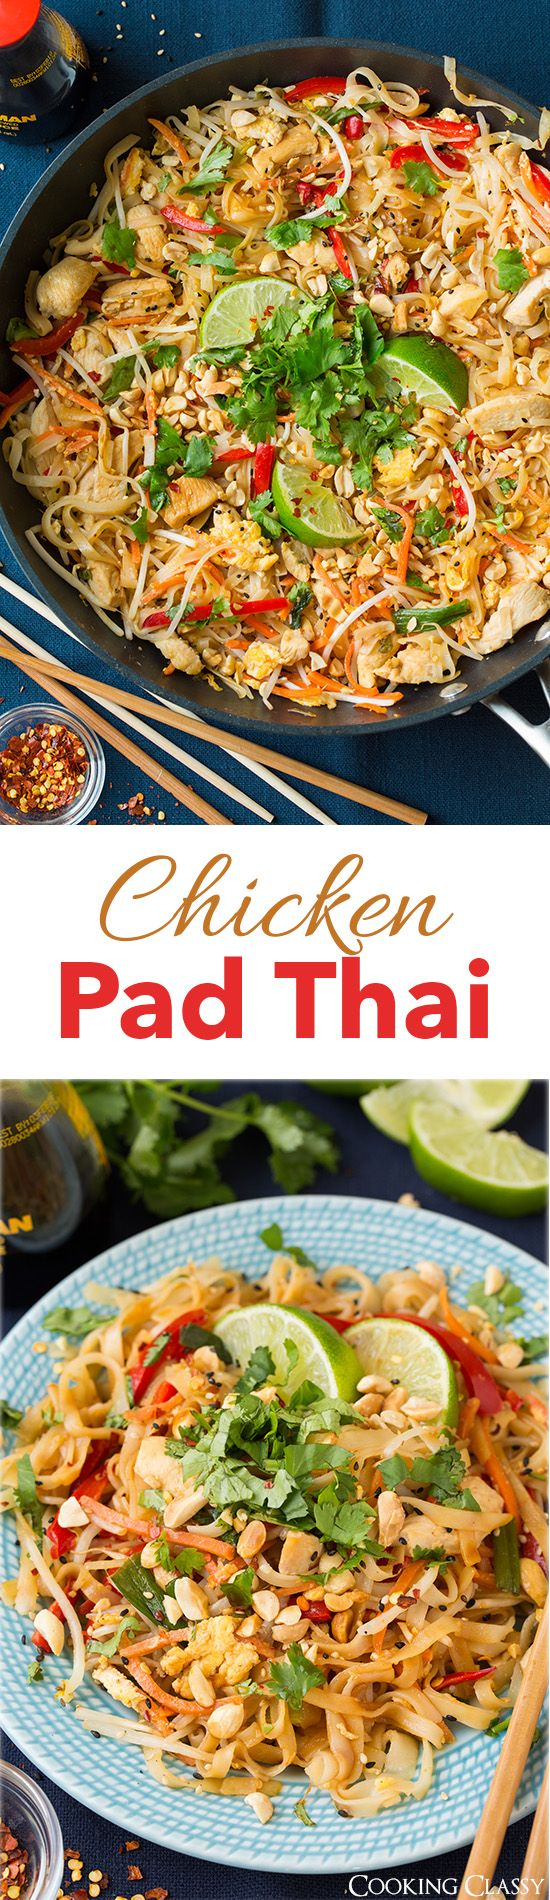 Chicken Pad Thai - this is SO SO good! We kept going back for more. Delicious crave worthy flavors. We loved it! #chicken #pad #thai http://www.cookingclassy.com/2015/03/chicken-pad-thai/ ❤️